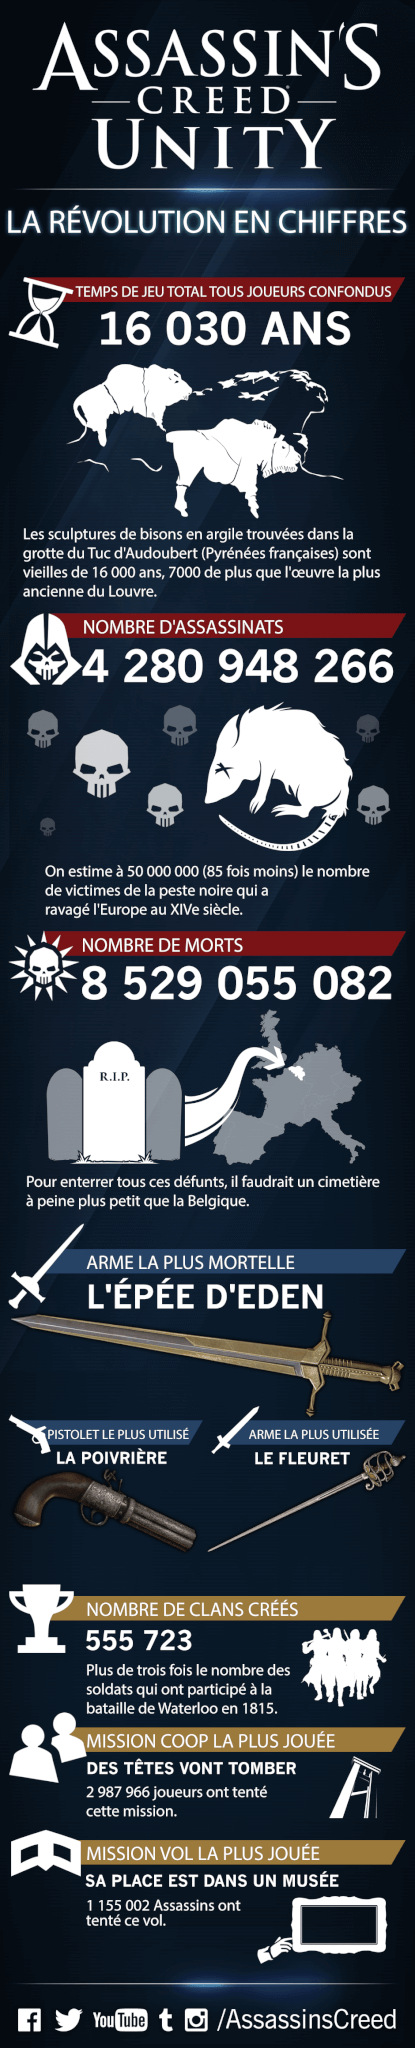 Assassins_Creed_Unity_Infographie